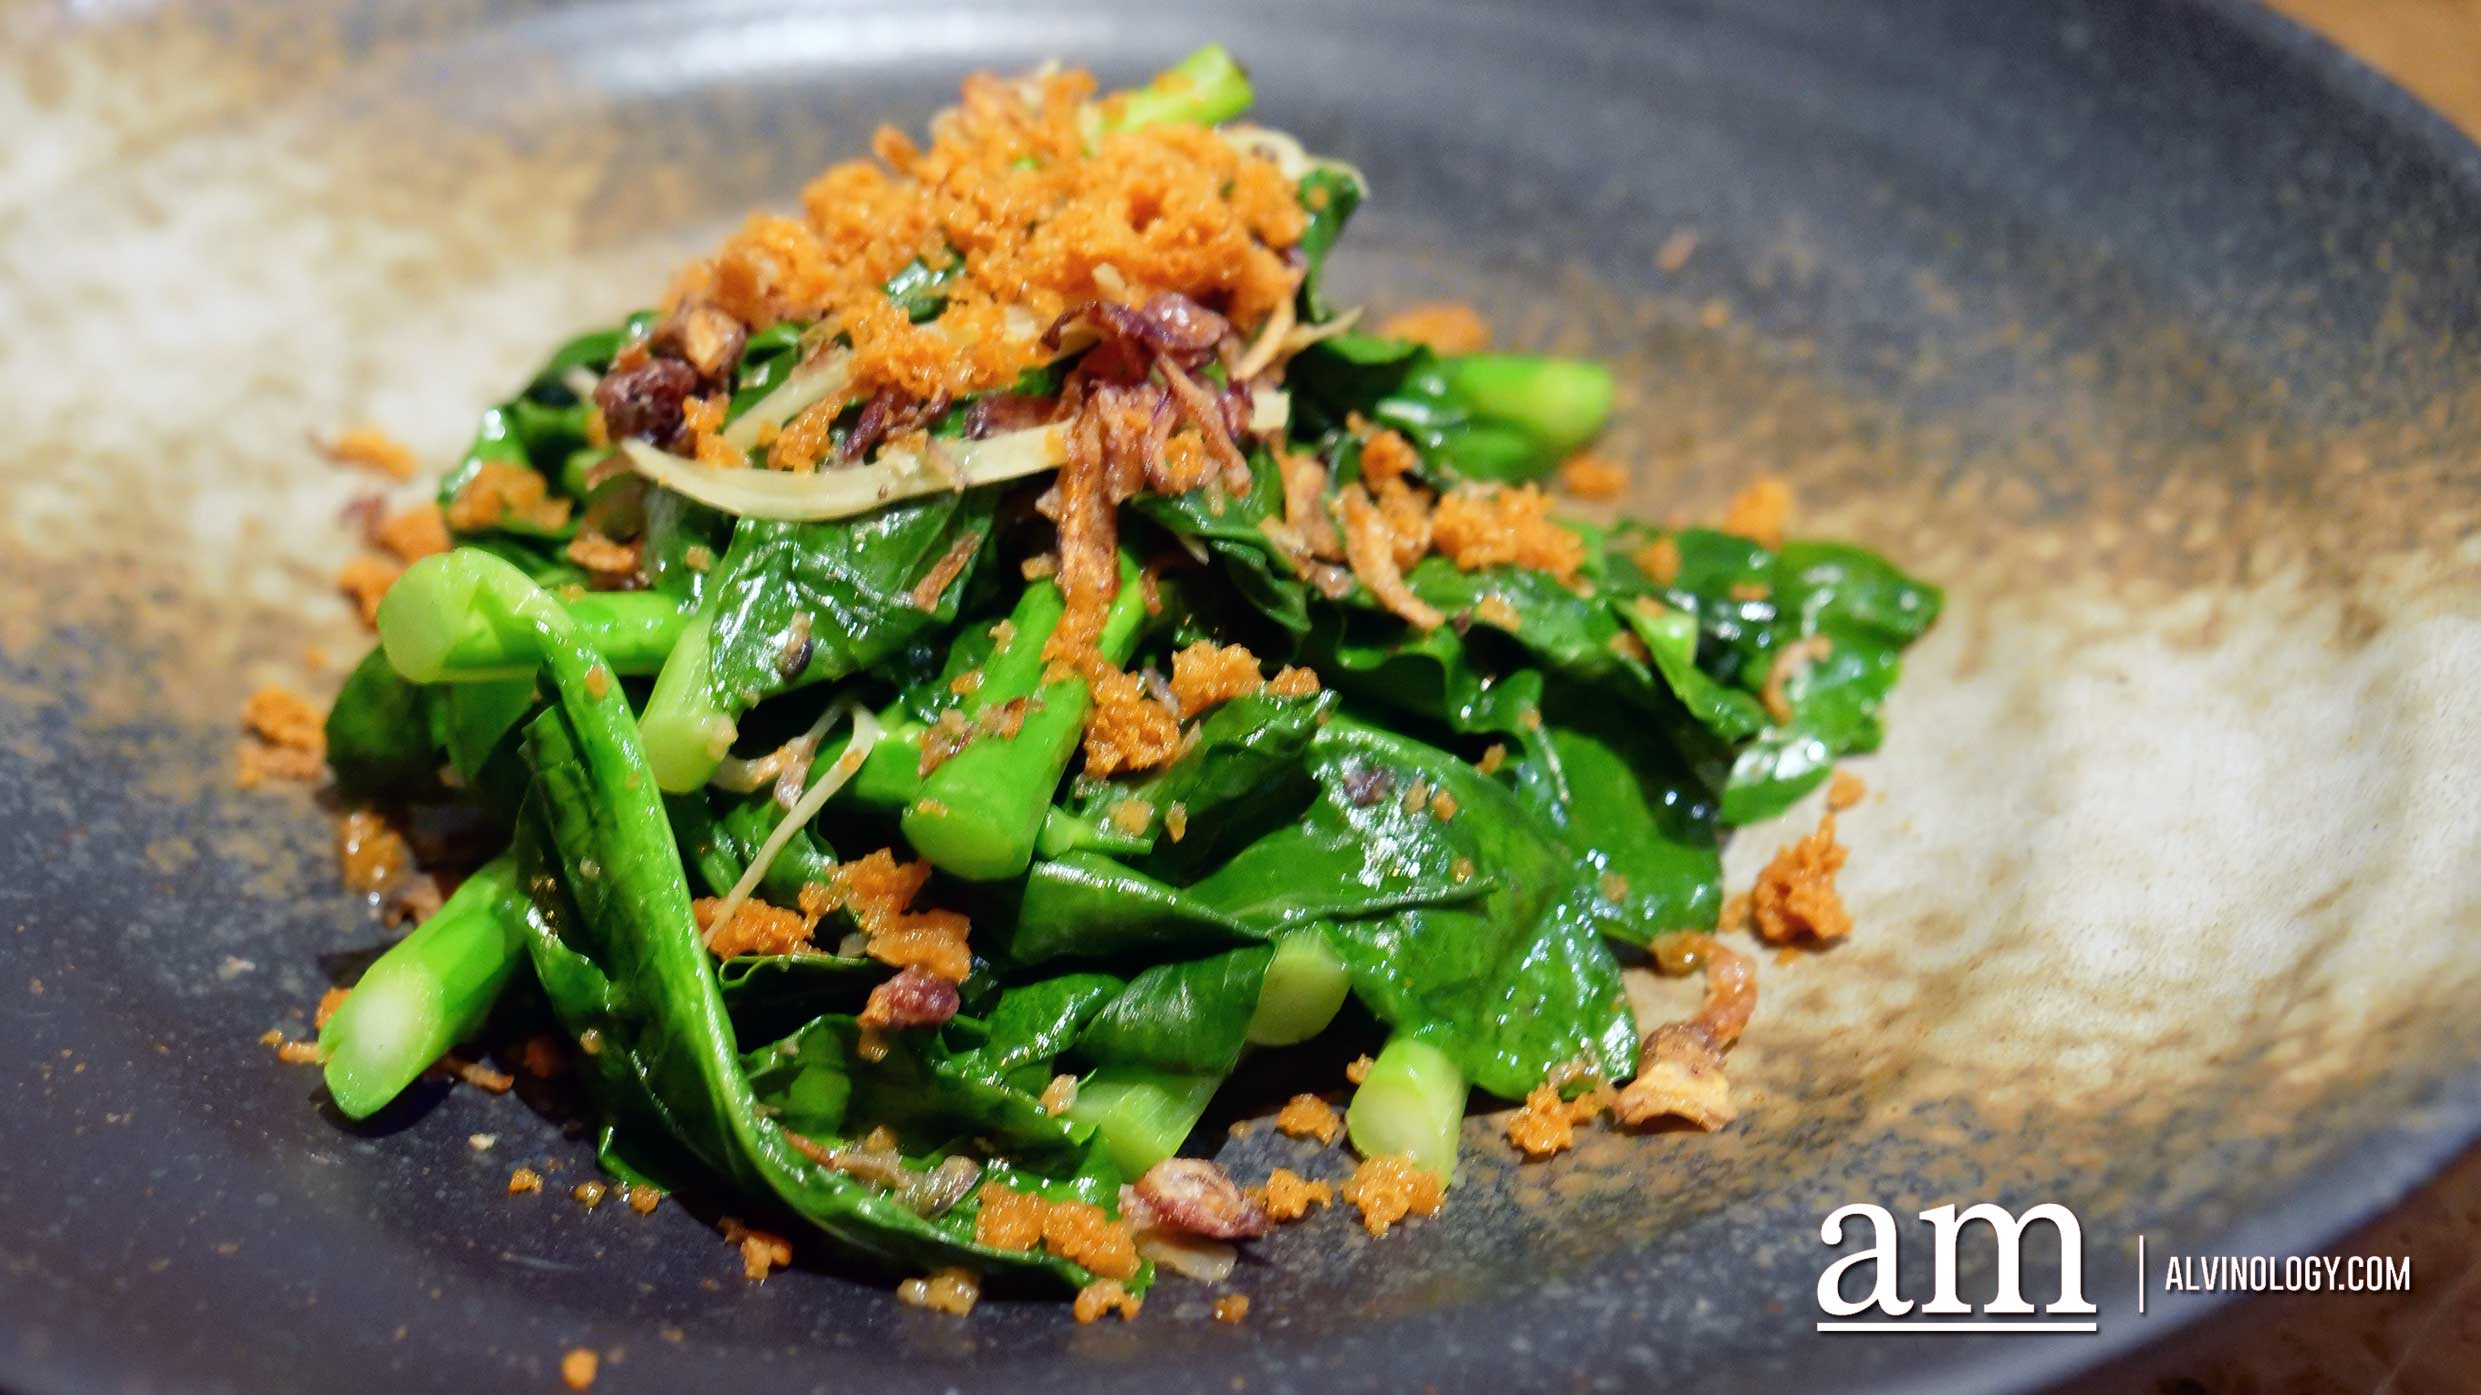 FOREST 森 launches S$54 National Day Special Menu featuring Chef Sam Leong's Mother's Heritage Recipes - Alvinology